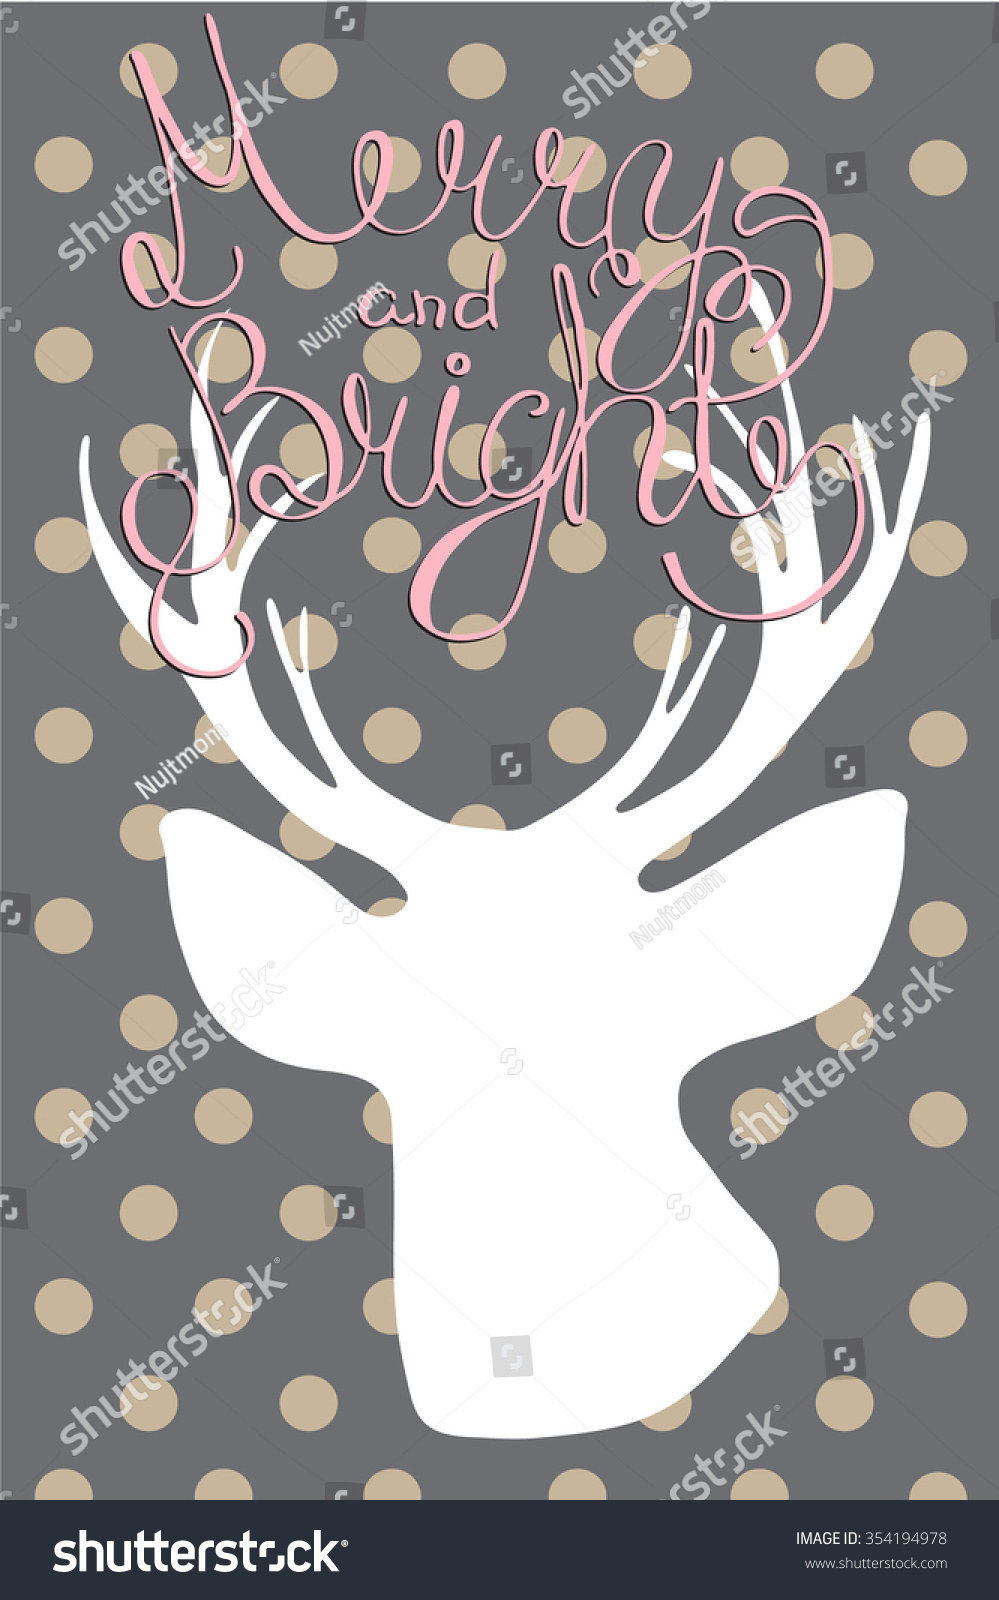 Merry Bright Whimsical Calligraphy Christmas Cards Stock Vector ...